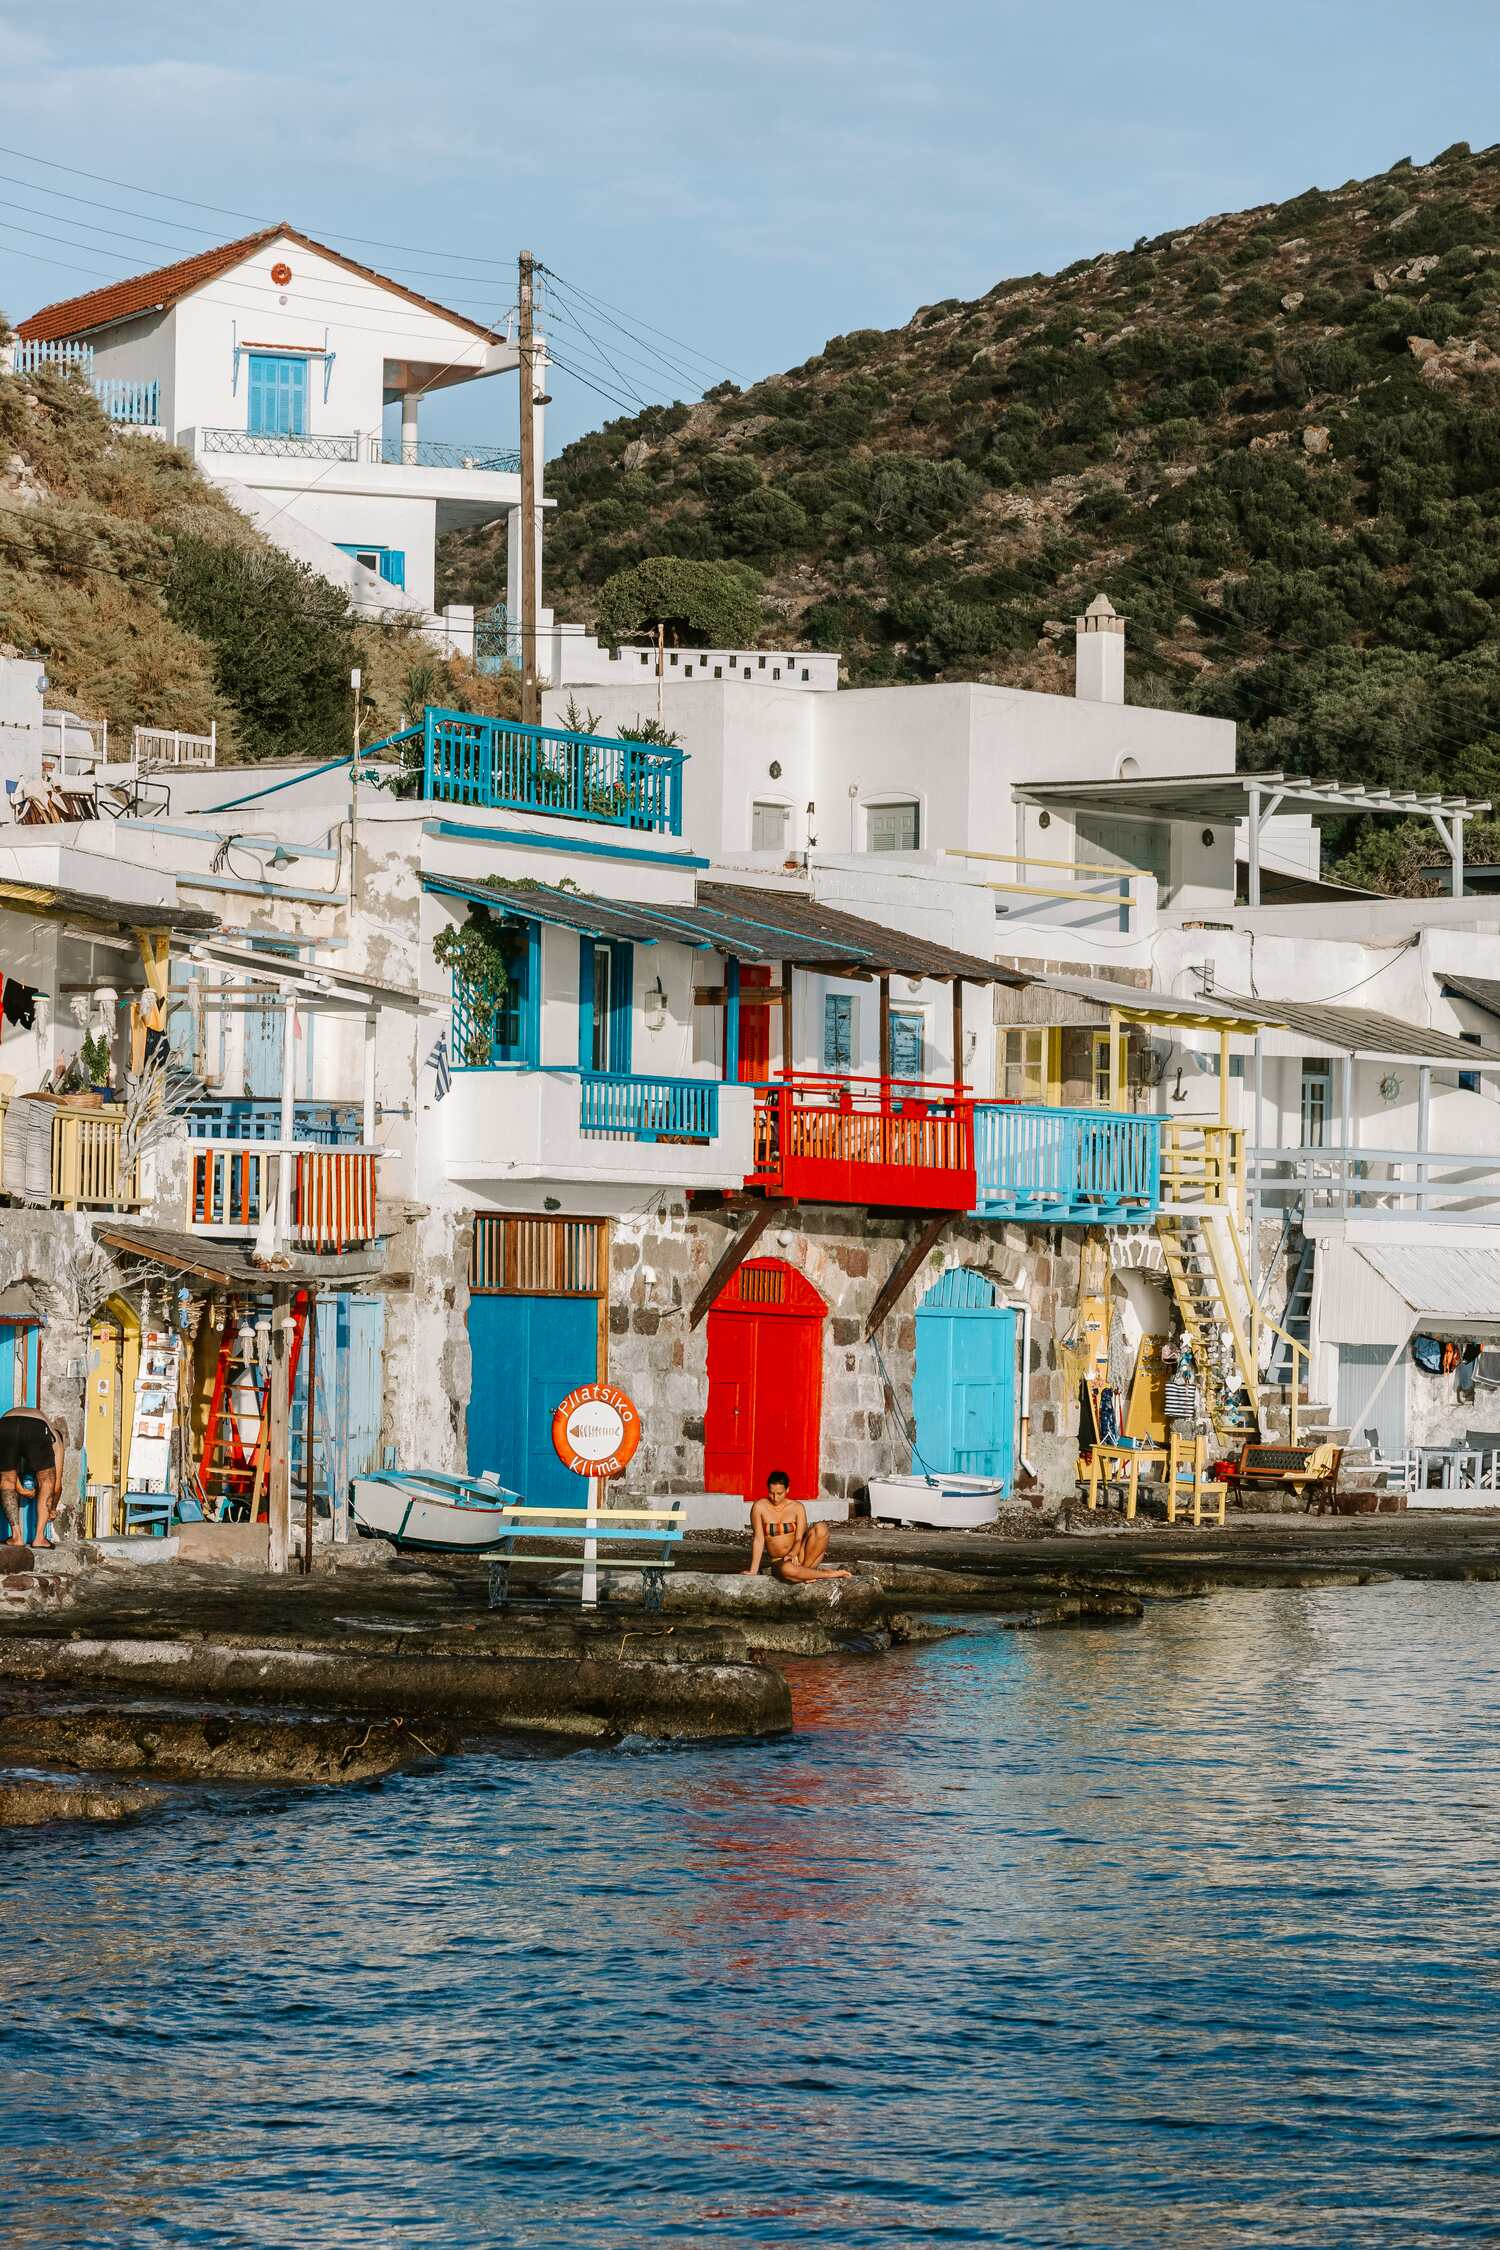 A sunset view over the beautiful fishing village of Klima on the Greek island of Milos